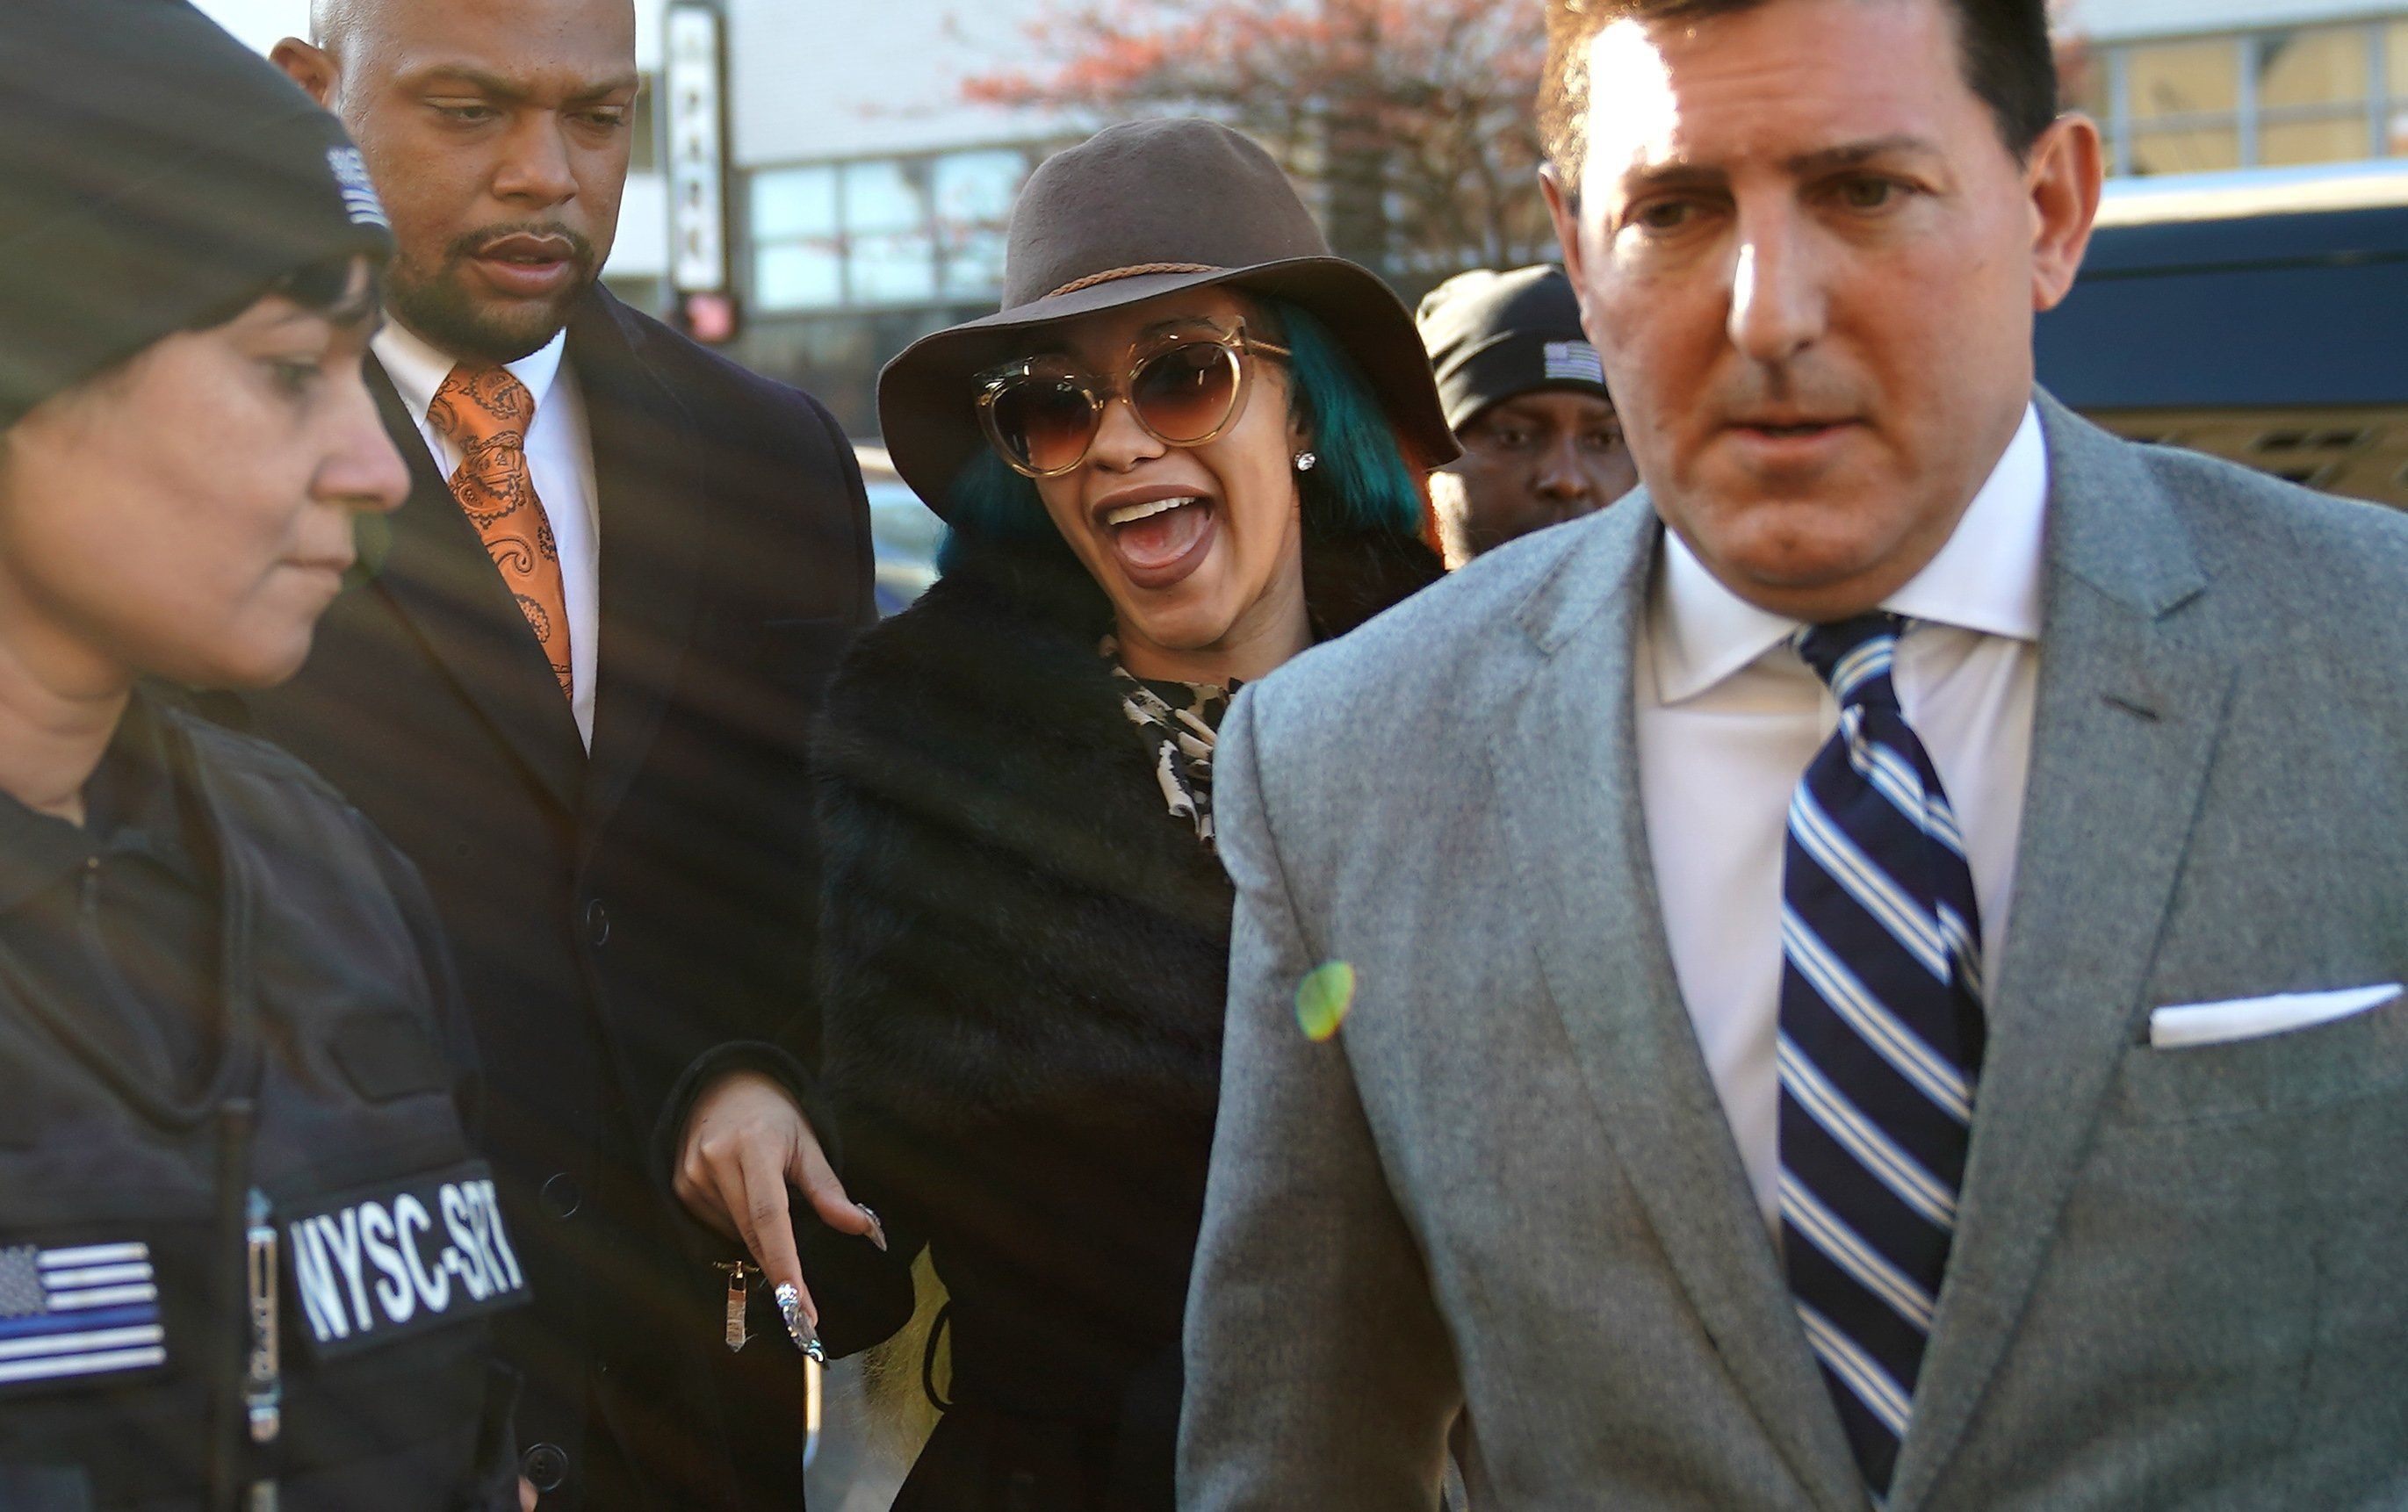 Rapper Cardi B, whose real name is Belcalis Almanzar, arrives at Queens County Court on December 7, 2018, to face charges stemming from a strip club fight in Queens. (Photo by TIMOTHY A. CLARY / AFP)        (Photo credit should read TIMOTHY A. CLARY/AFP/Getty Images)